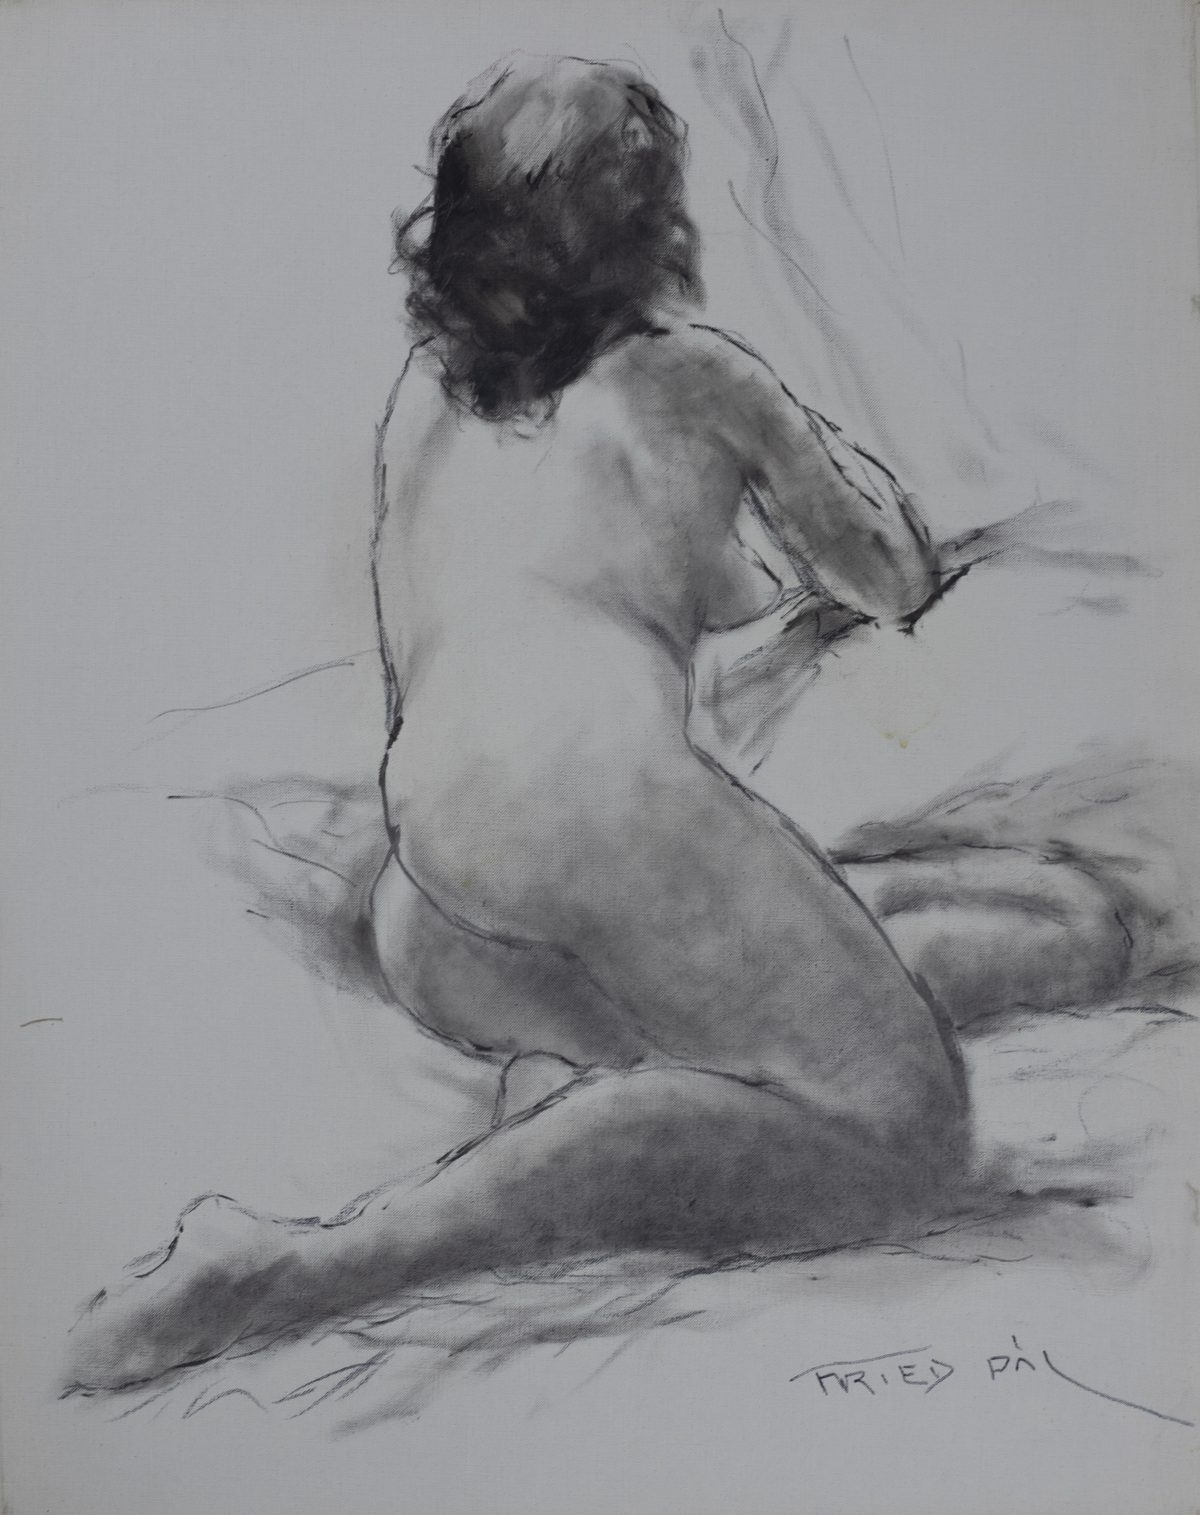 Pál Fried - Untitled (Nude, Black and White II)